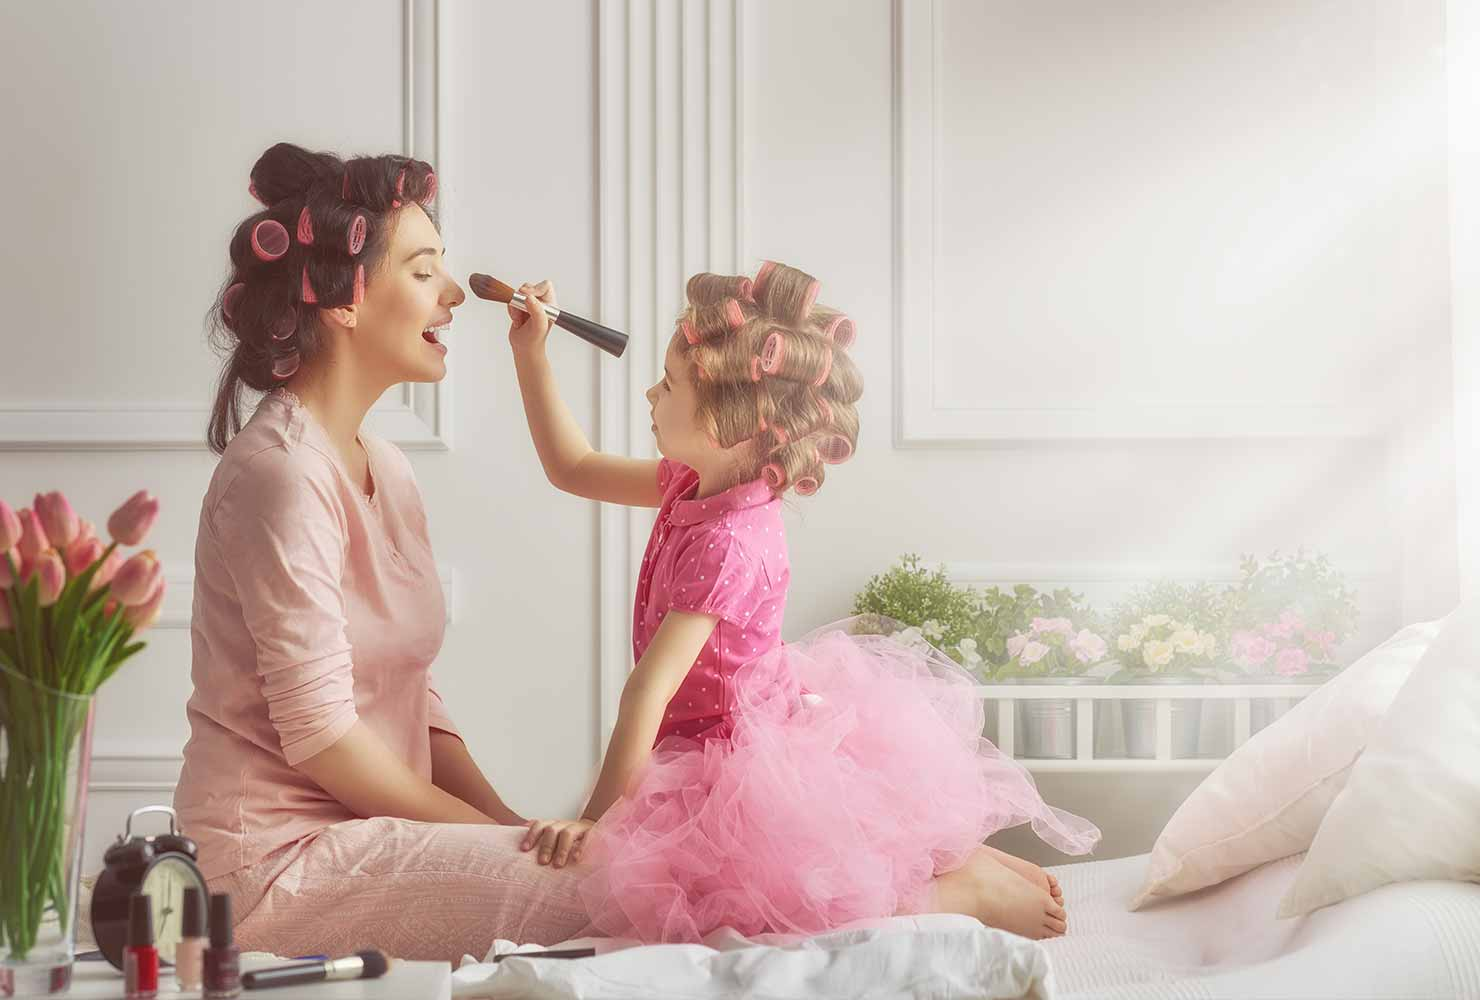 mom and daughter playing dress up and doing makeup